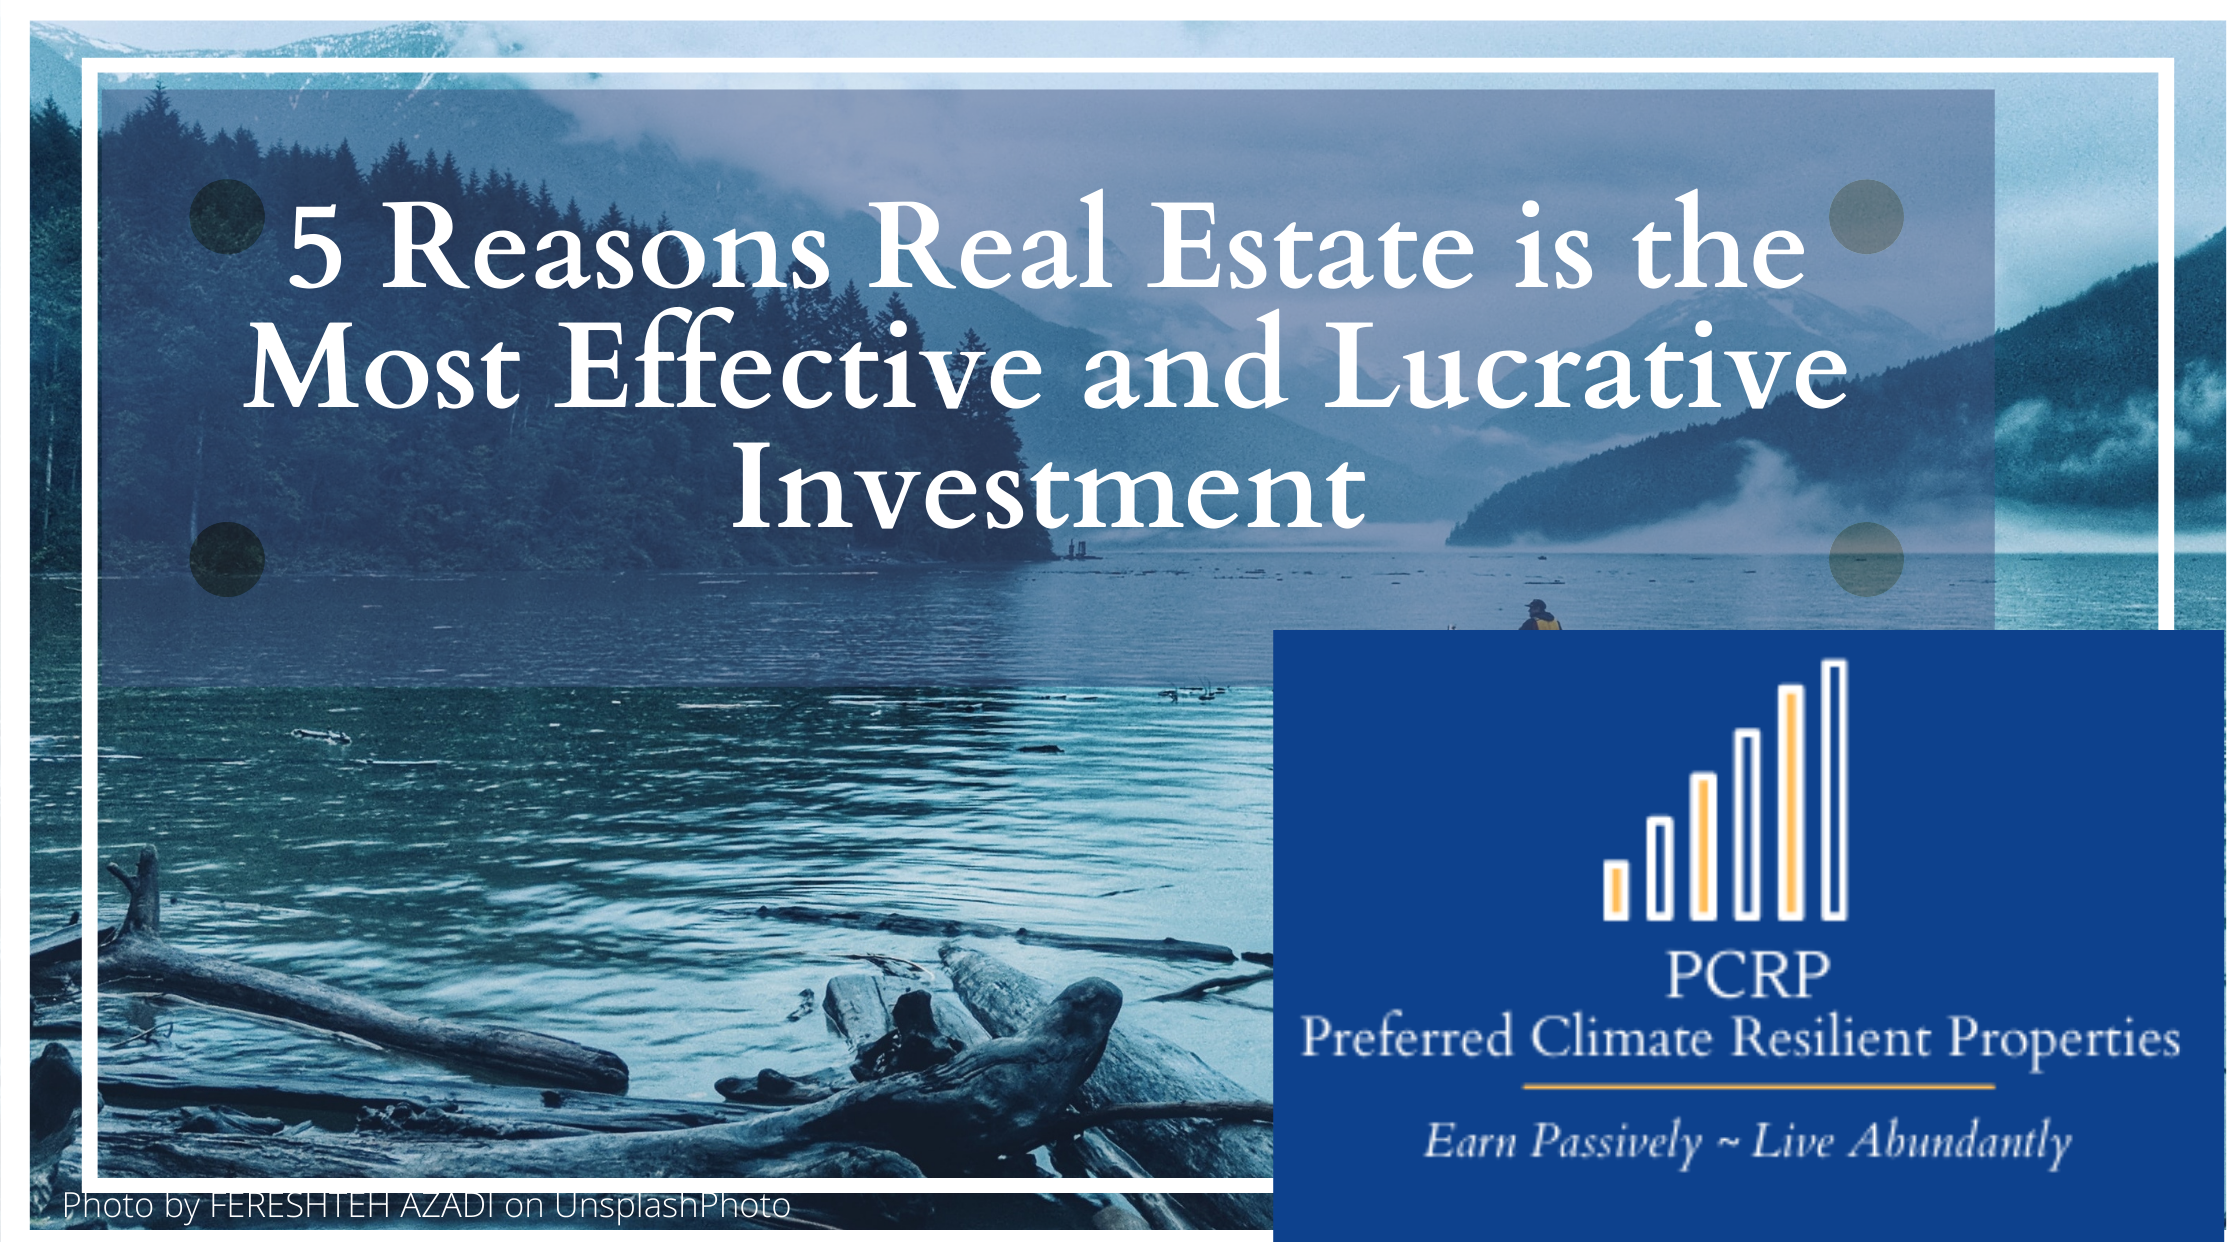 5 Reasons Why RE Most Lucrative Investment